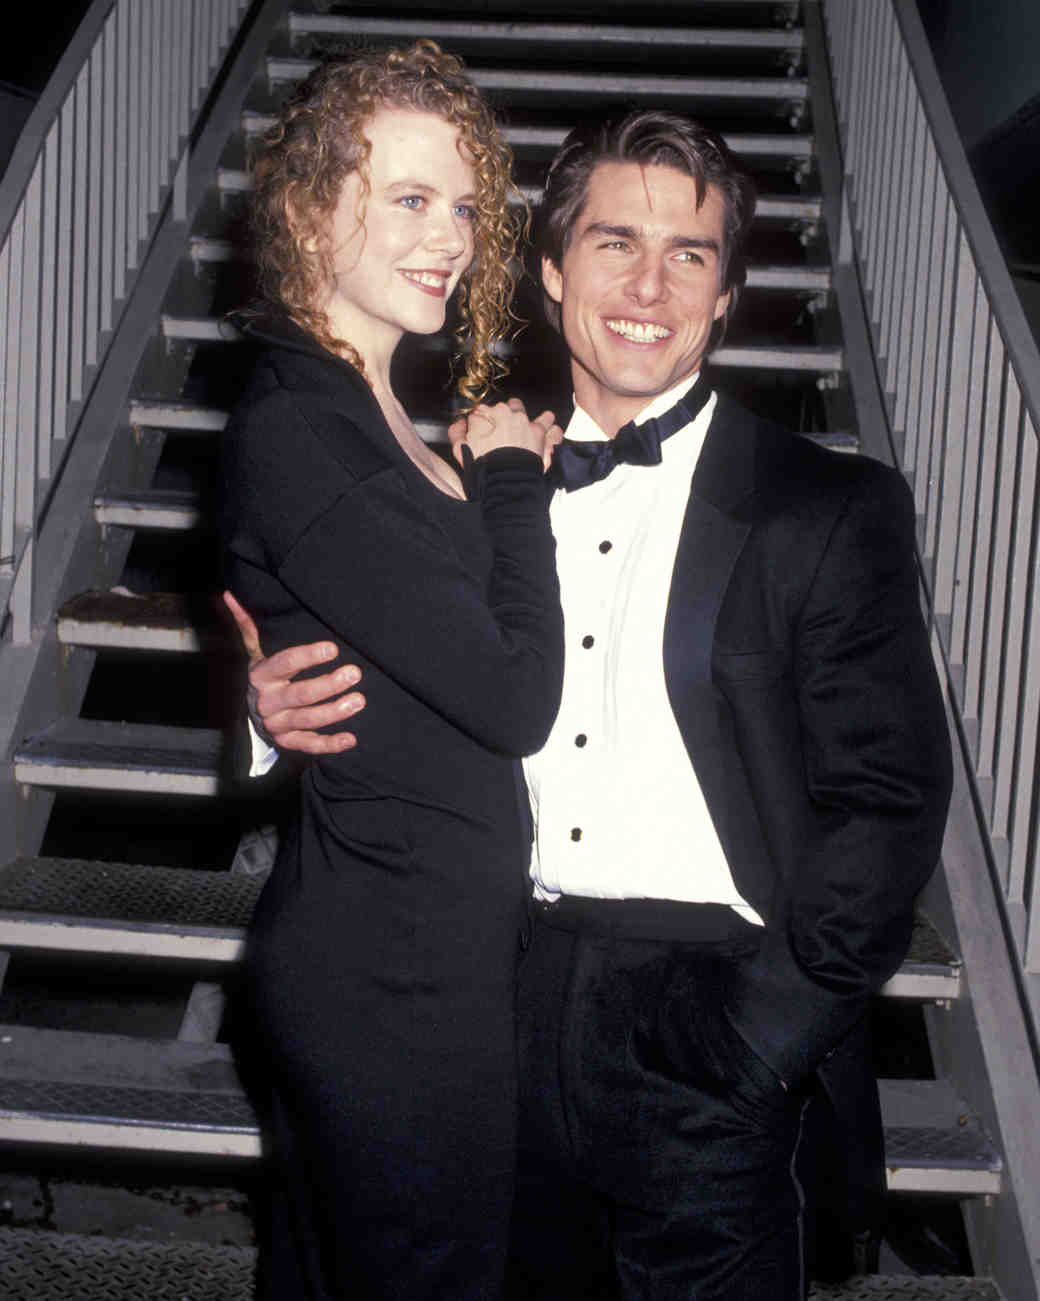 1990: Tom Cruise and Nicole Kidman